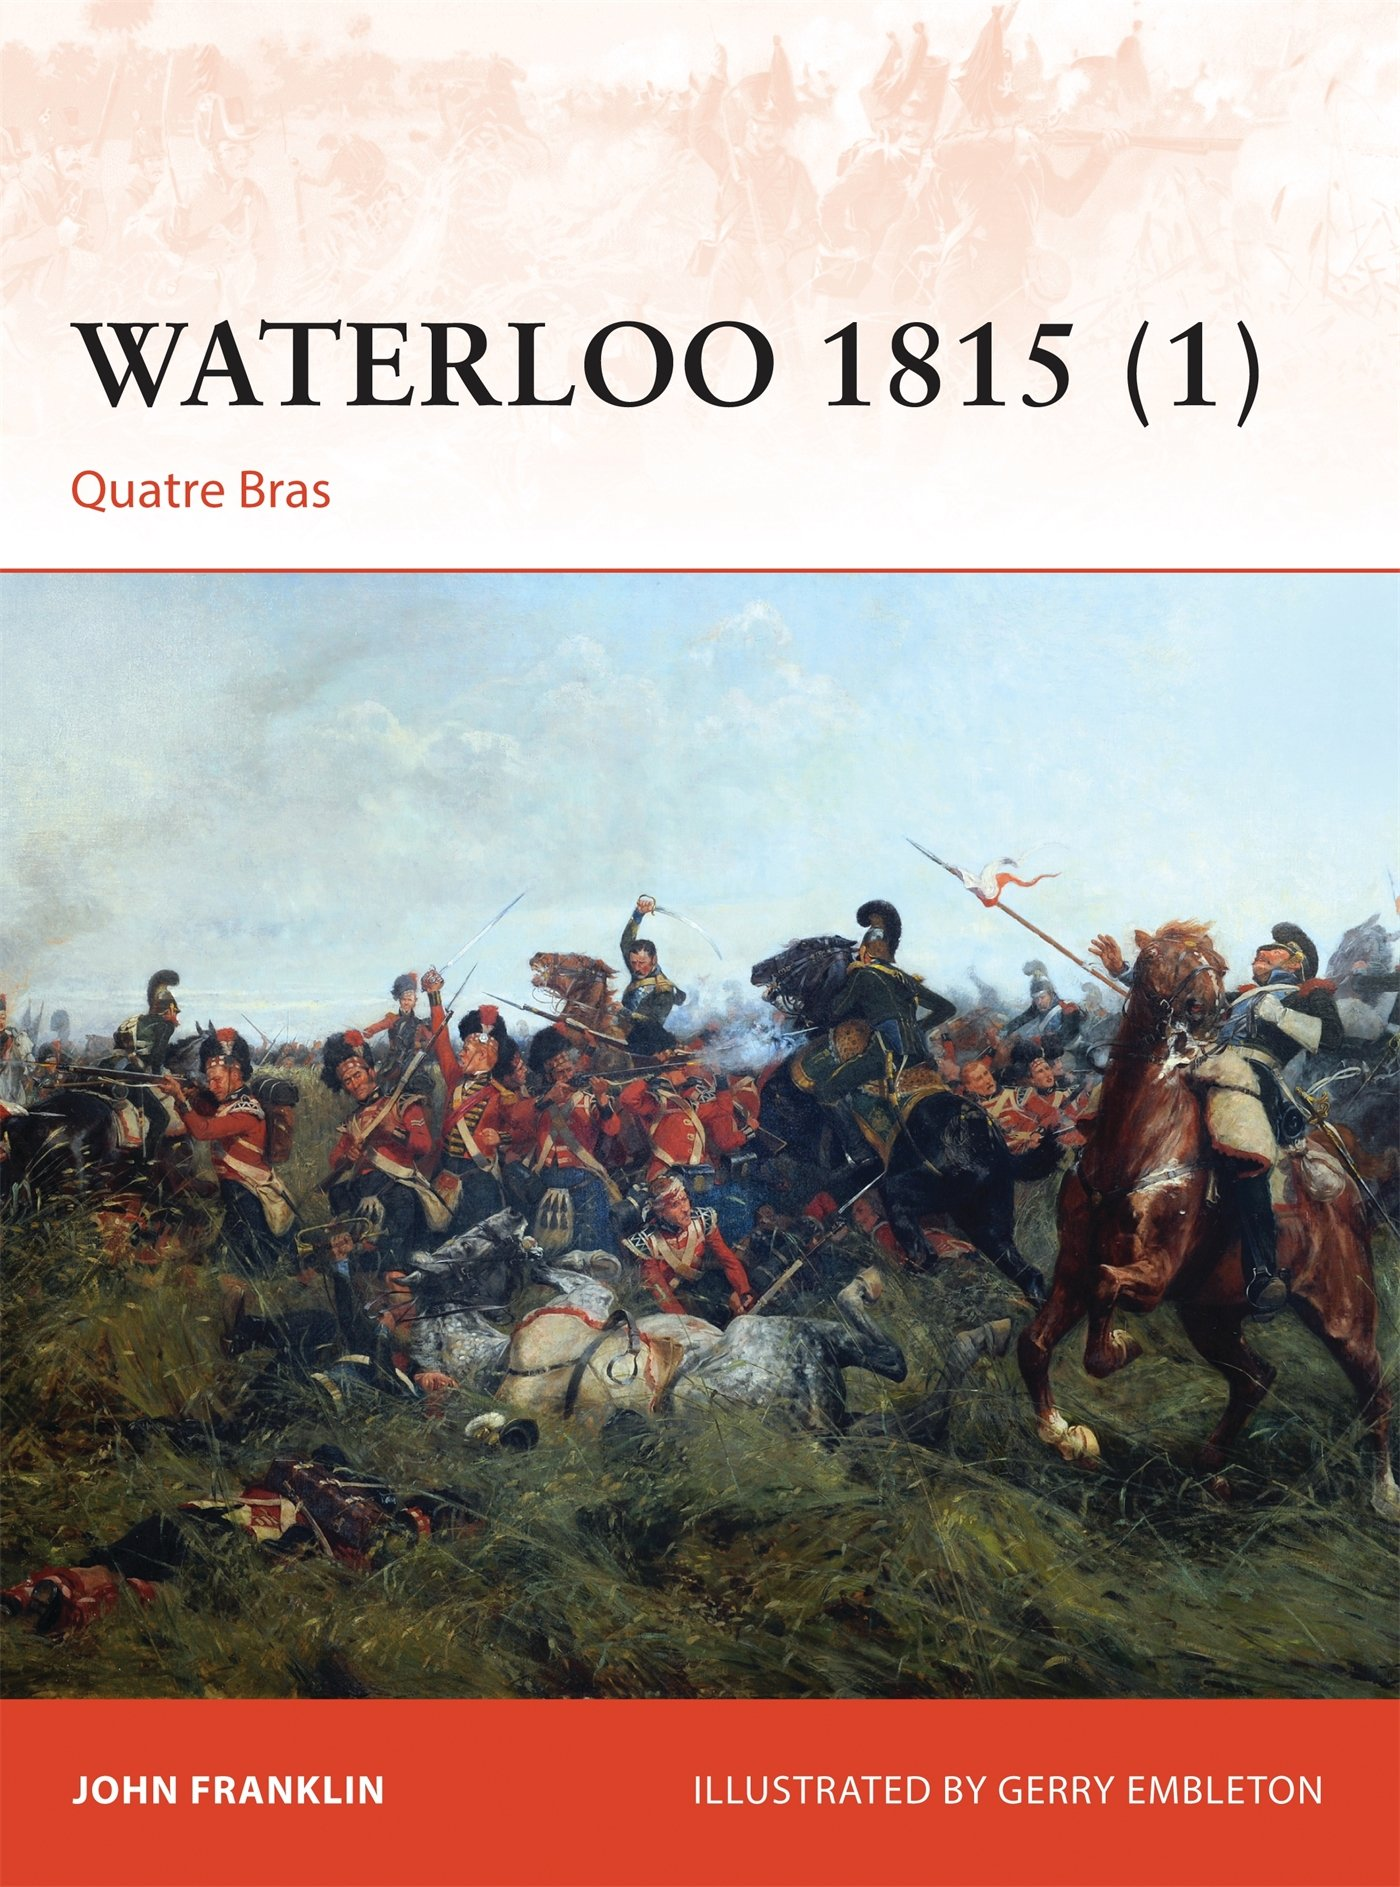 Waterloo 1815 1 Quatre Bras